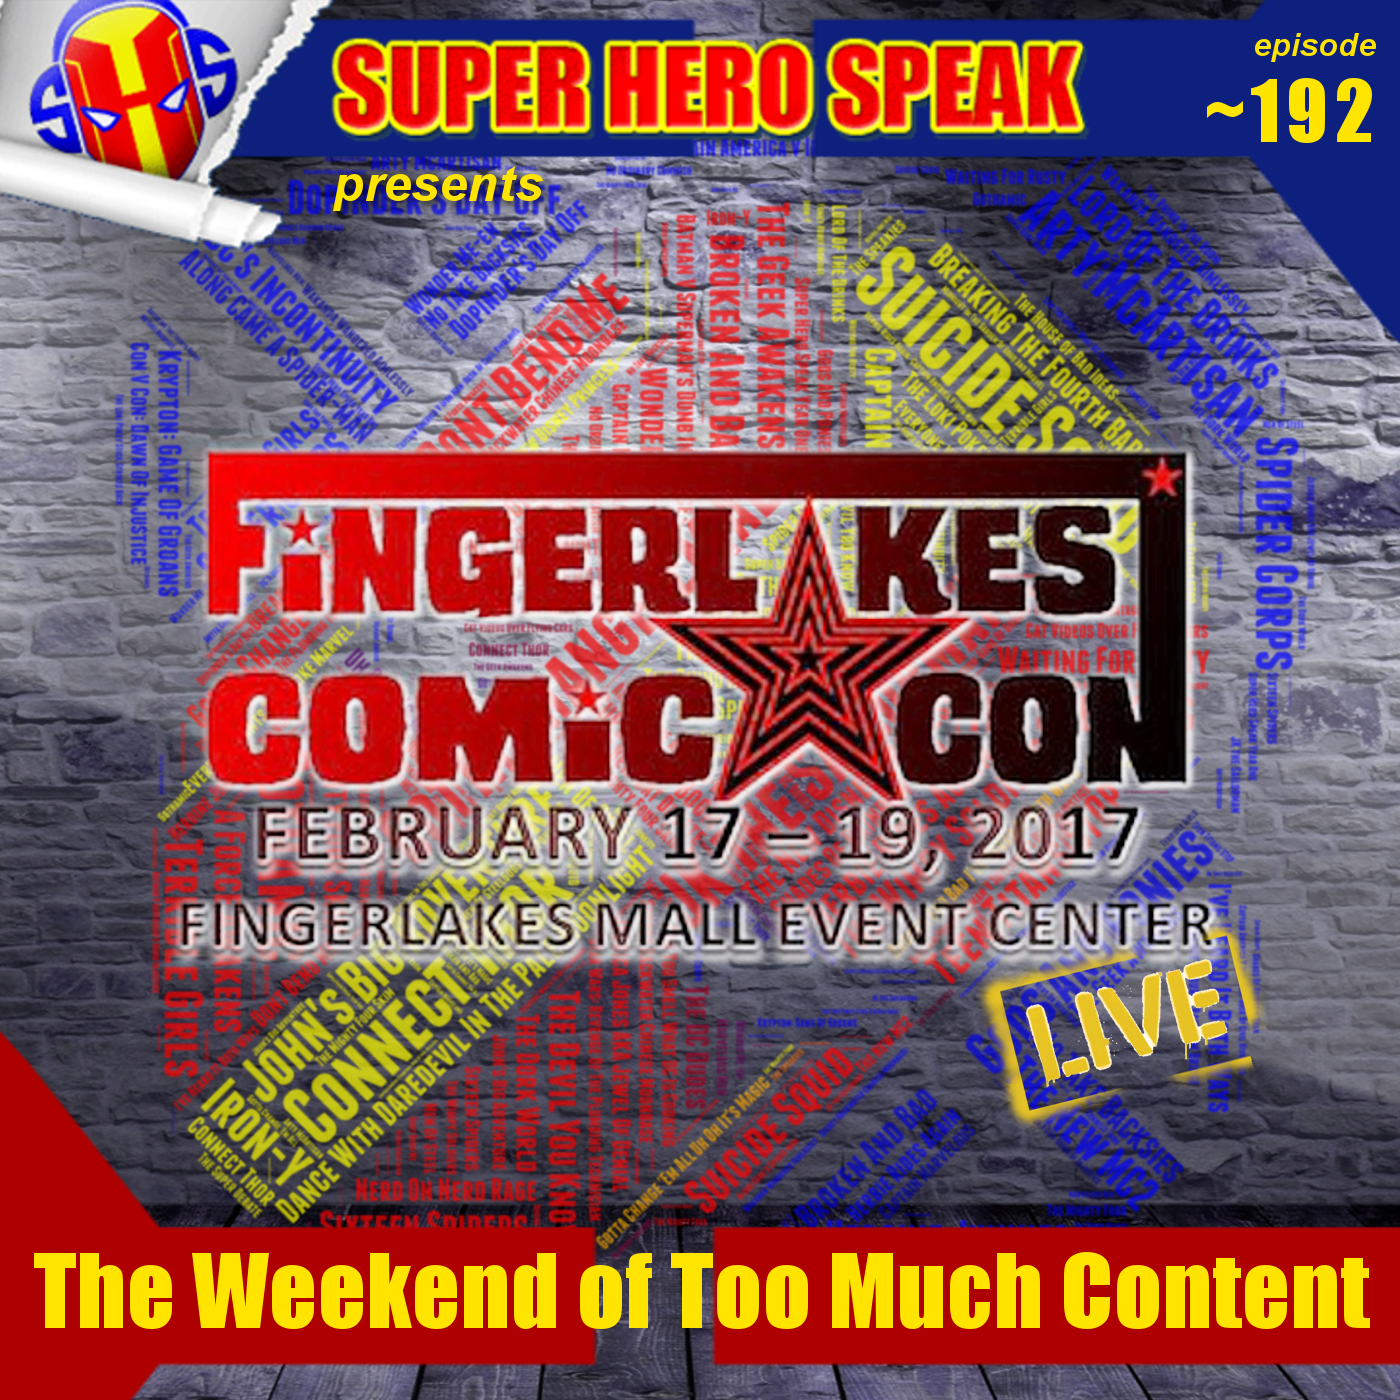 #192.1 Finger Lakes Comic Con Part 1